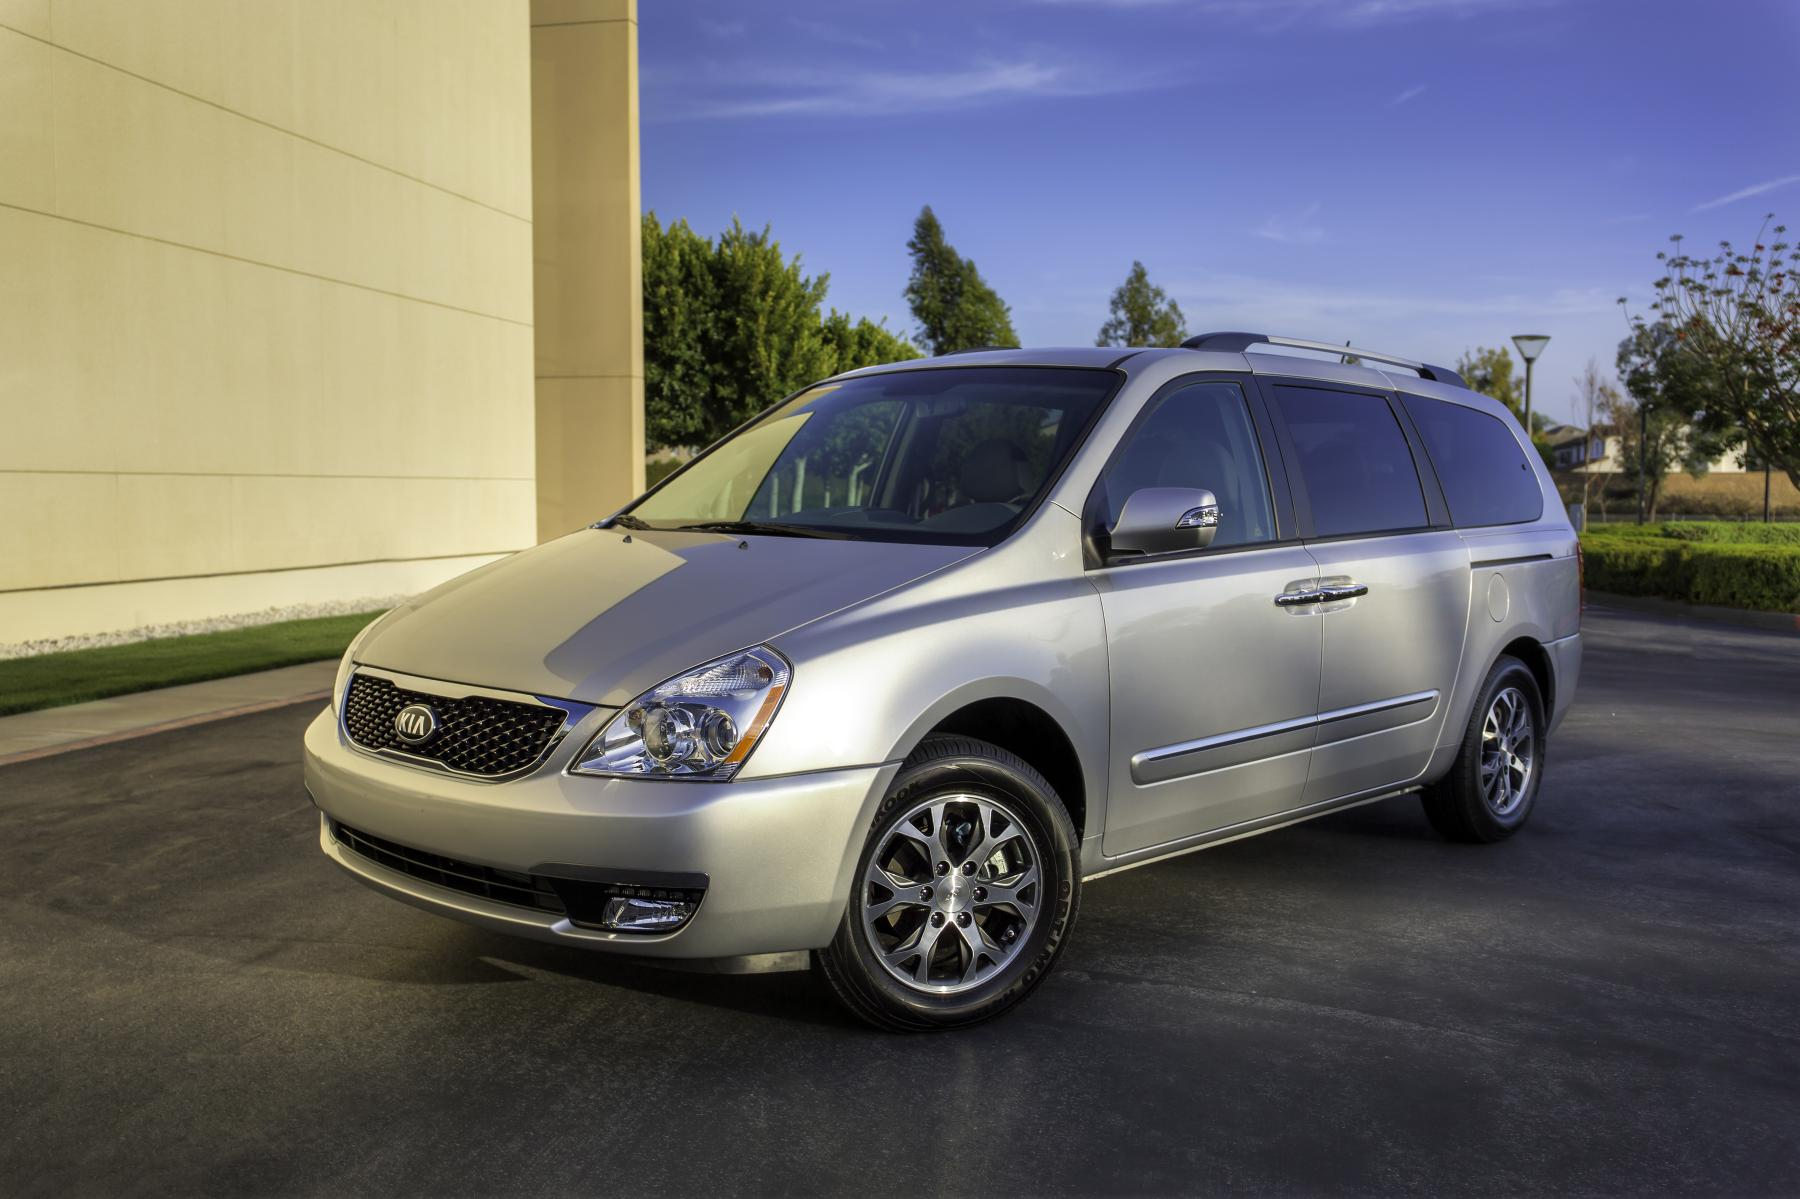 hight resolution of this is the only photo kia has released of the 2014 kia sedona notice the new nose